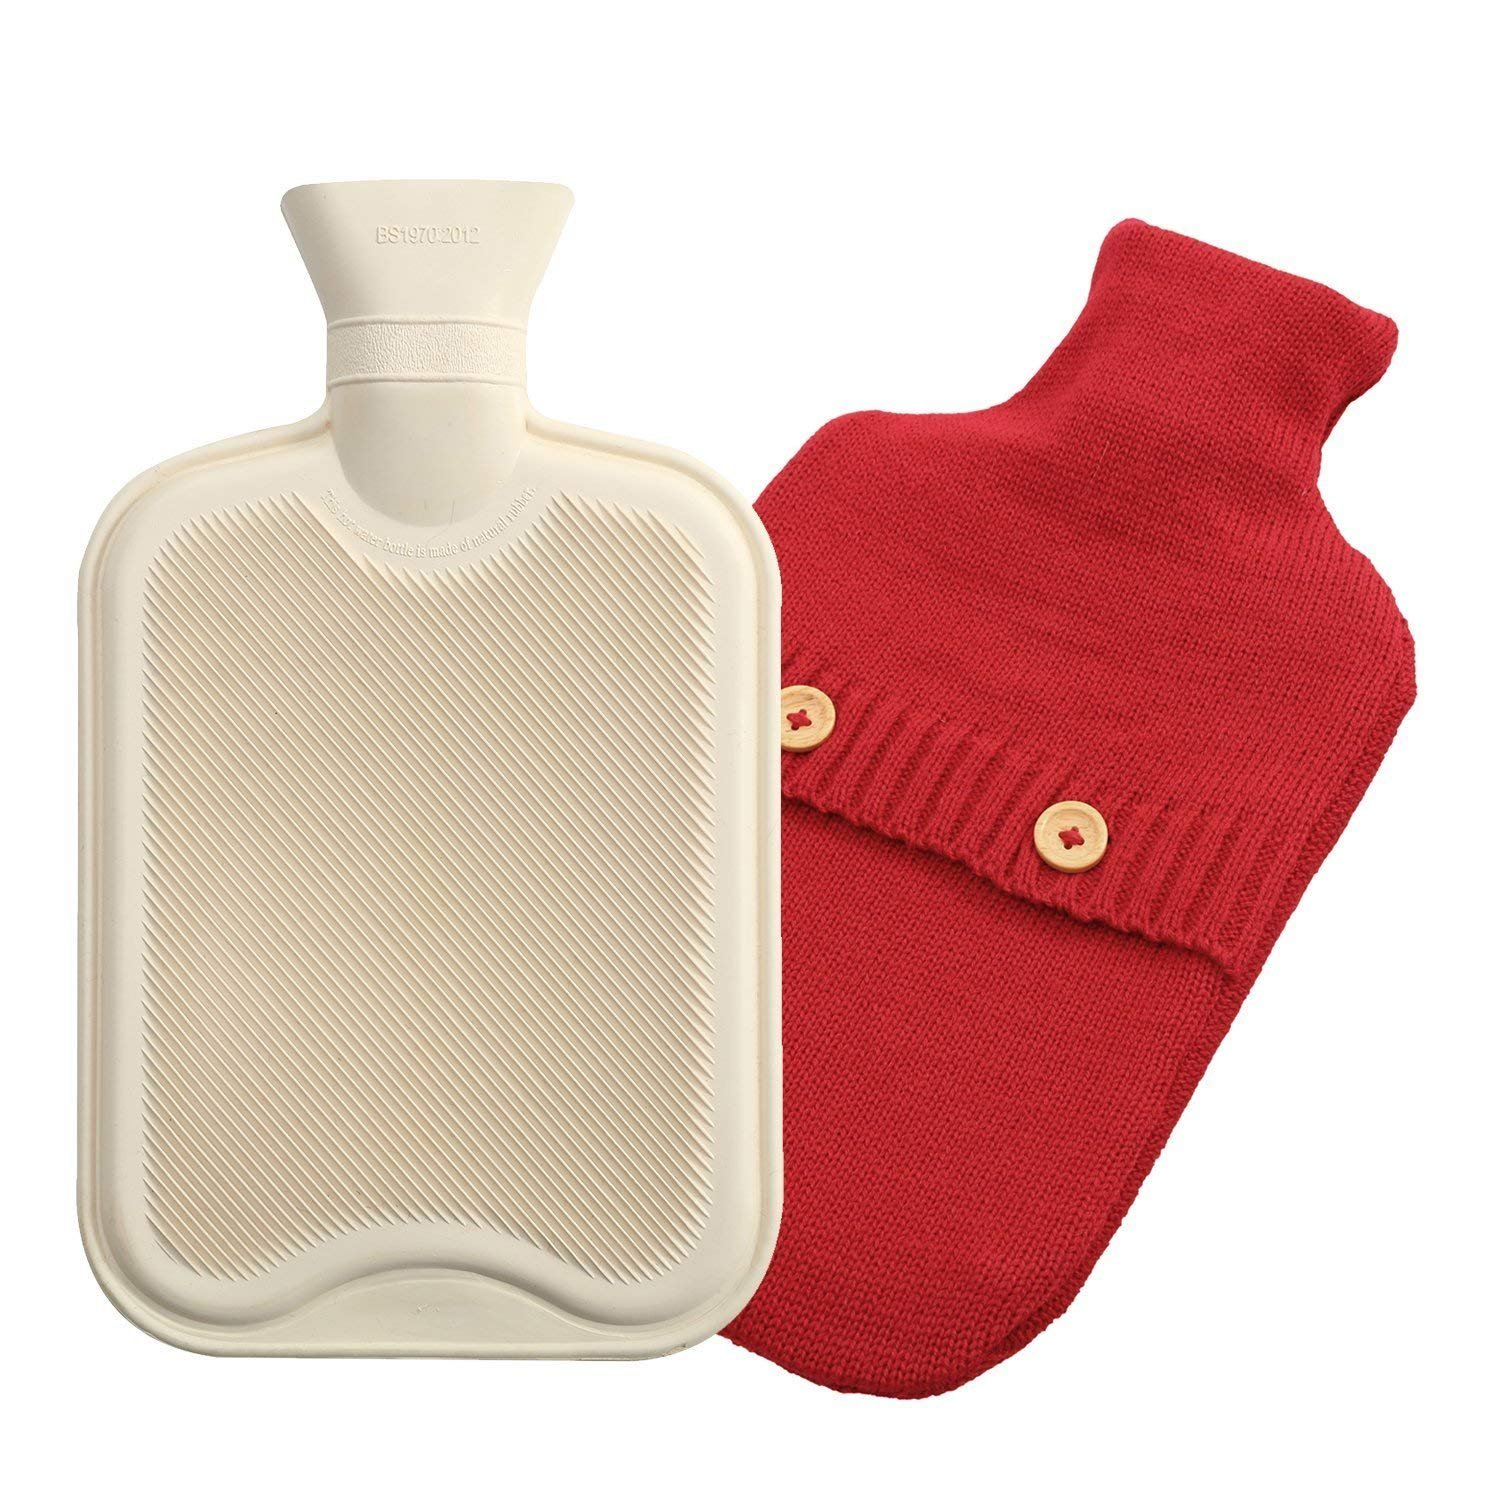 Time2Shop Premium Cozy 2 Liter Nature Rubber Hot Water Bottle w/Knitted Cover (Red)